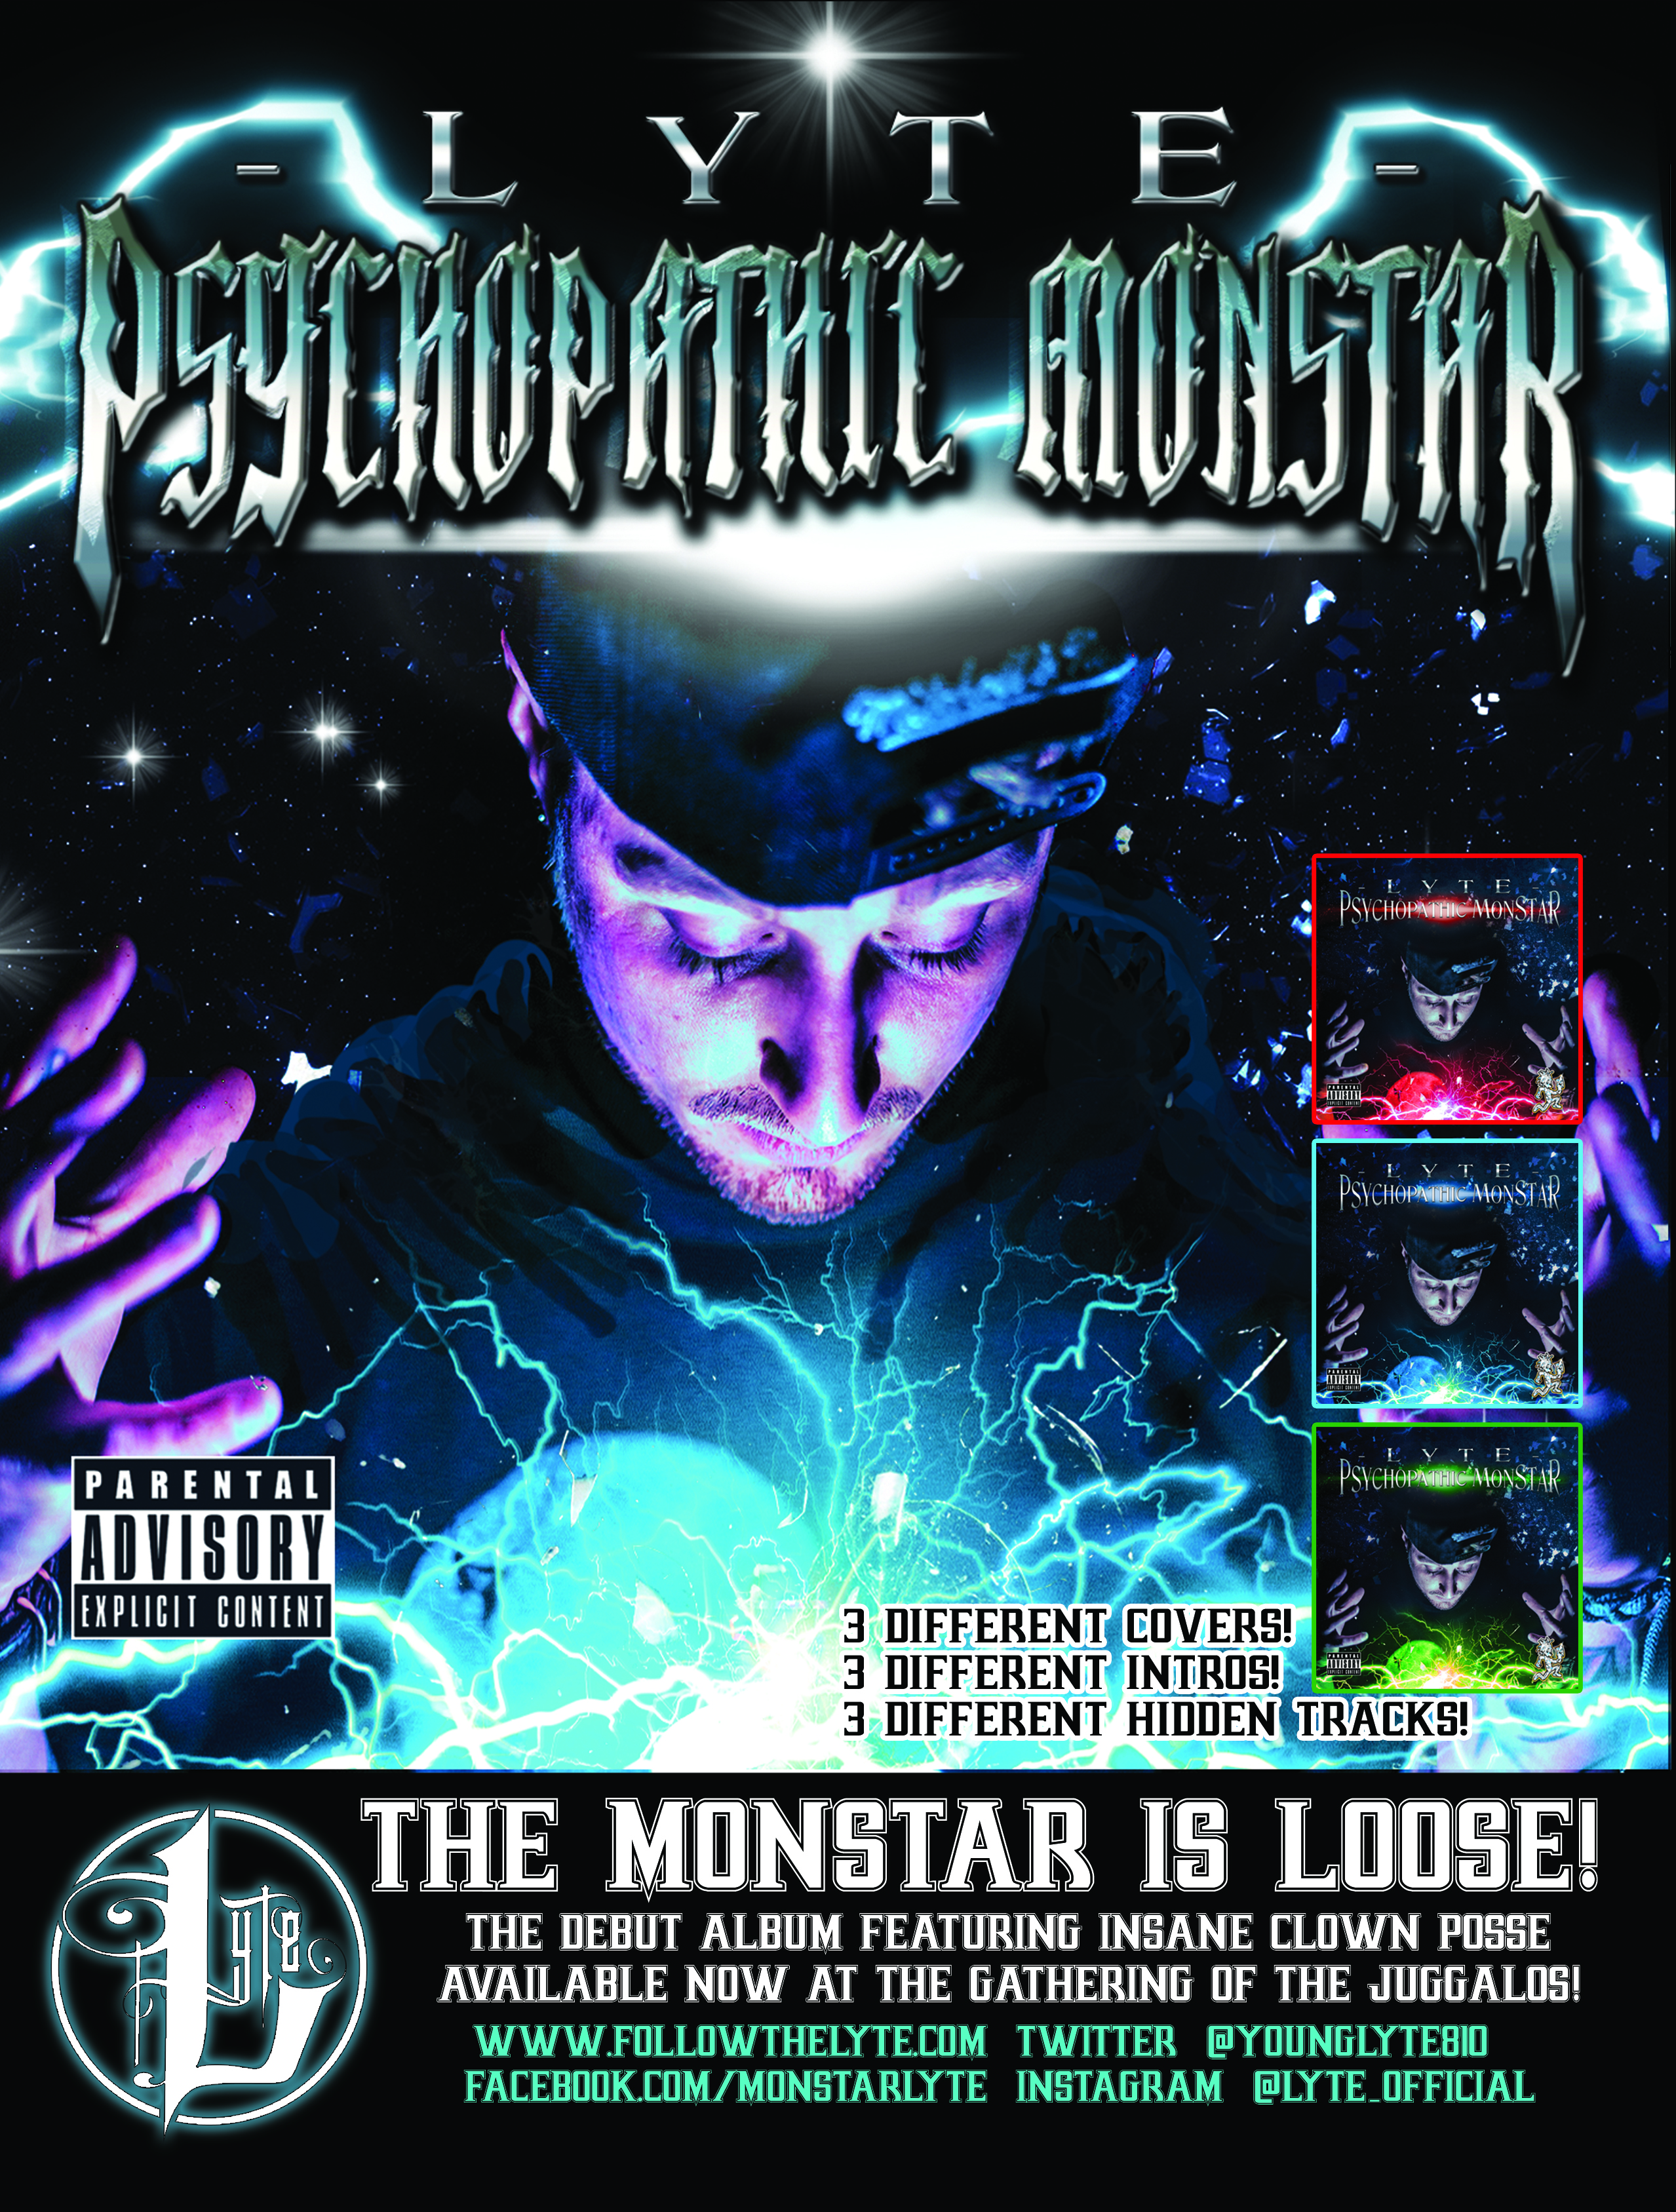 Icp Albums And Songs List Top lyte releases debut single from psychopathic monstar lp | faygoluvers